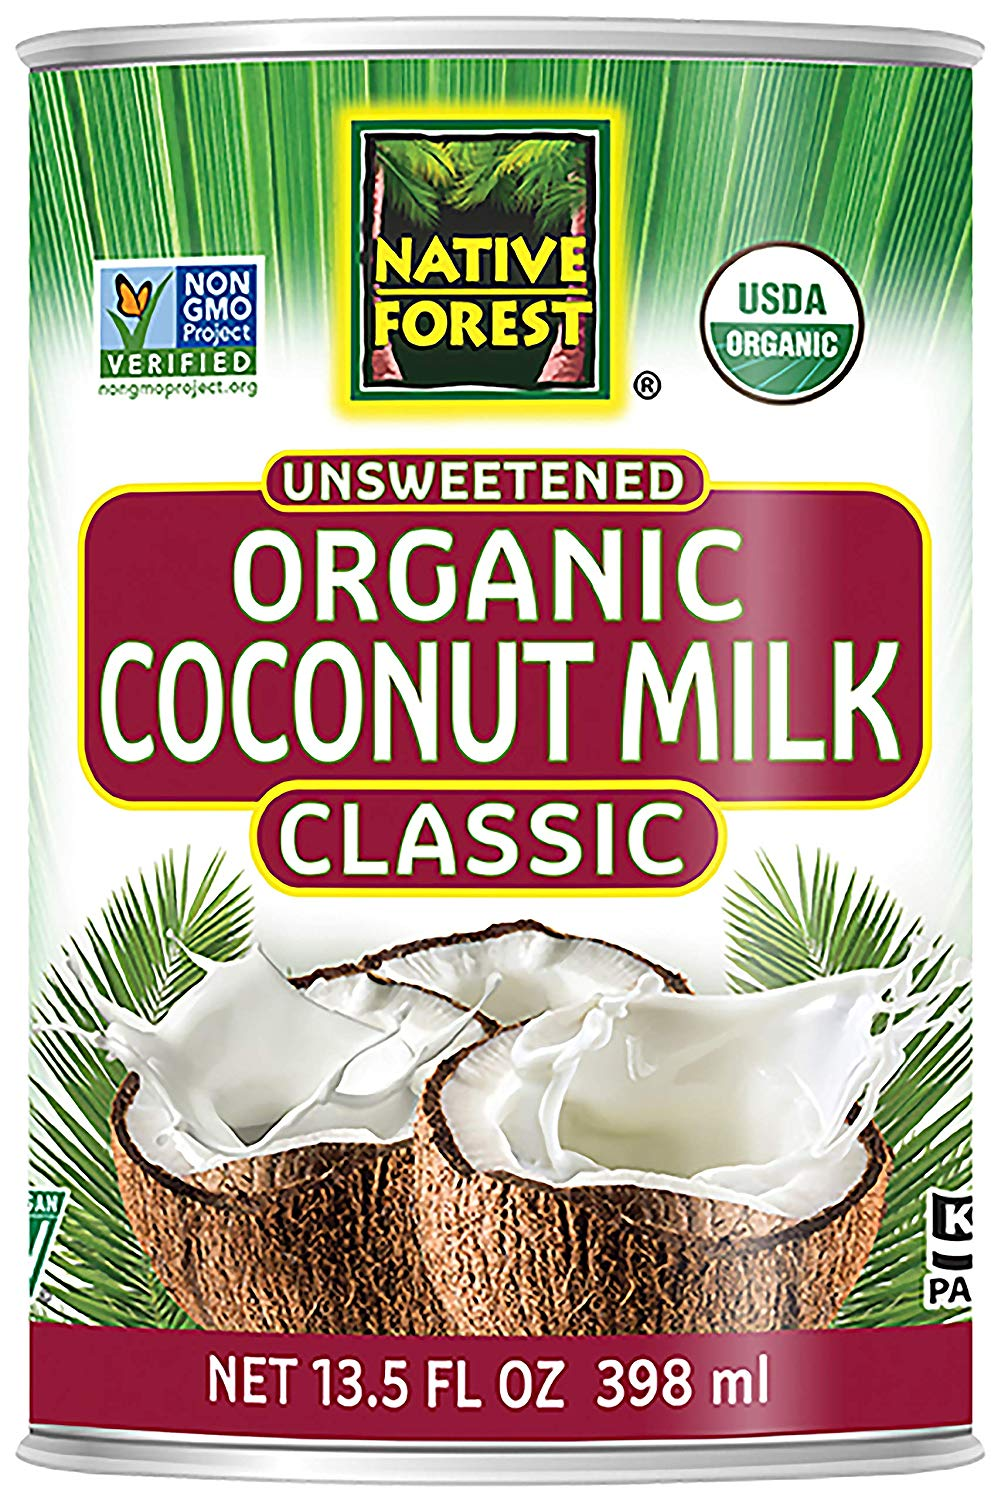 lectin free shopping list - coconut milk